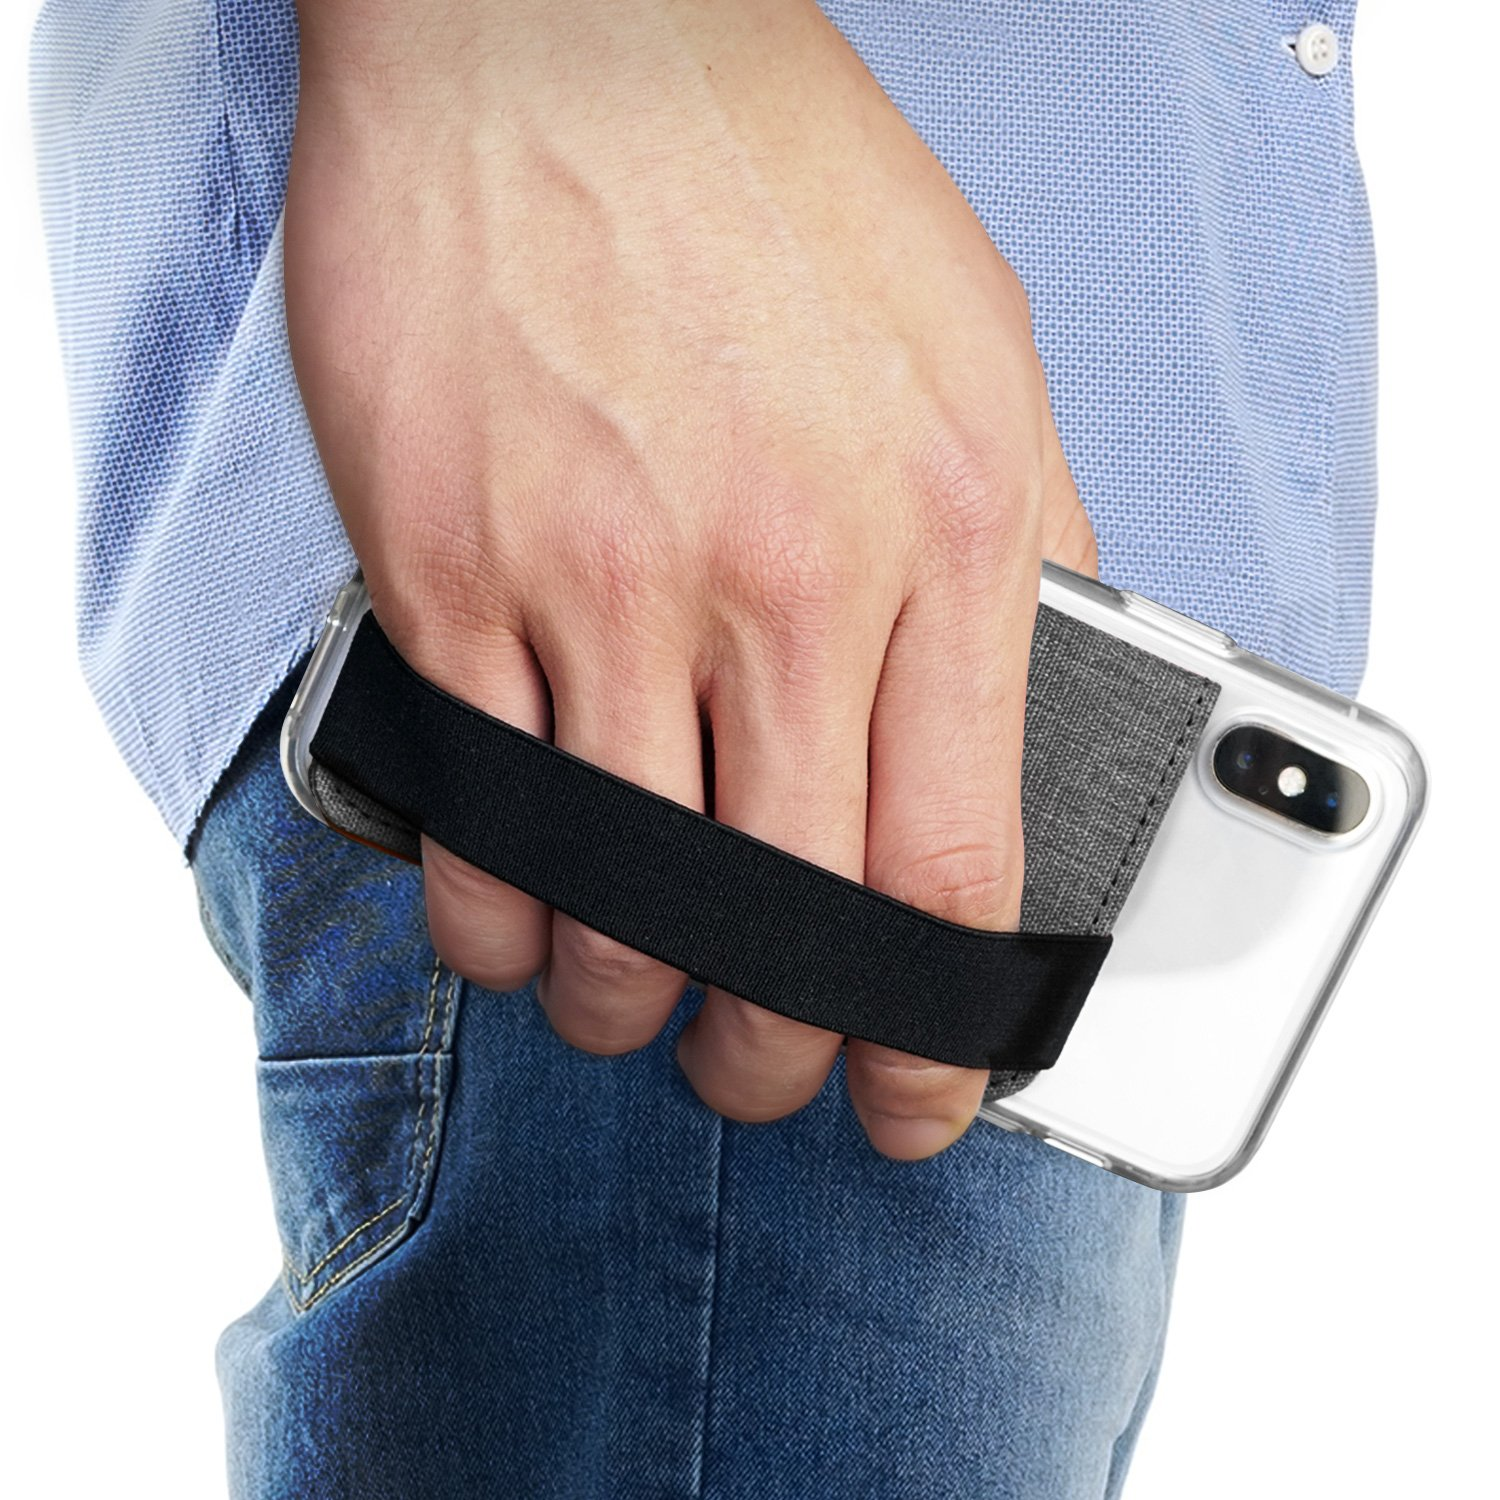 Ringke Flip Card Holder with Elastic Hand Strap [Charcoal Black] Slim Soft Band Grip Fashion Multi-Card Slot Wallet Credit Card Mini Pouch Holder Attachment for iPhone, Galaxy, Note, Google Accessory 4336647840